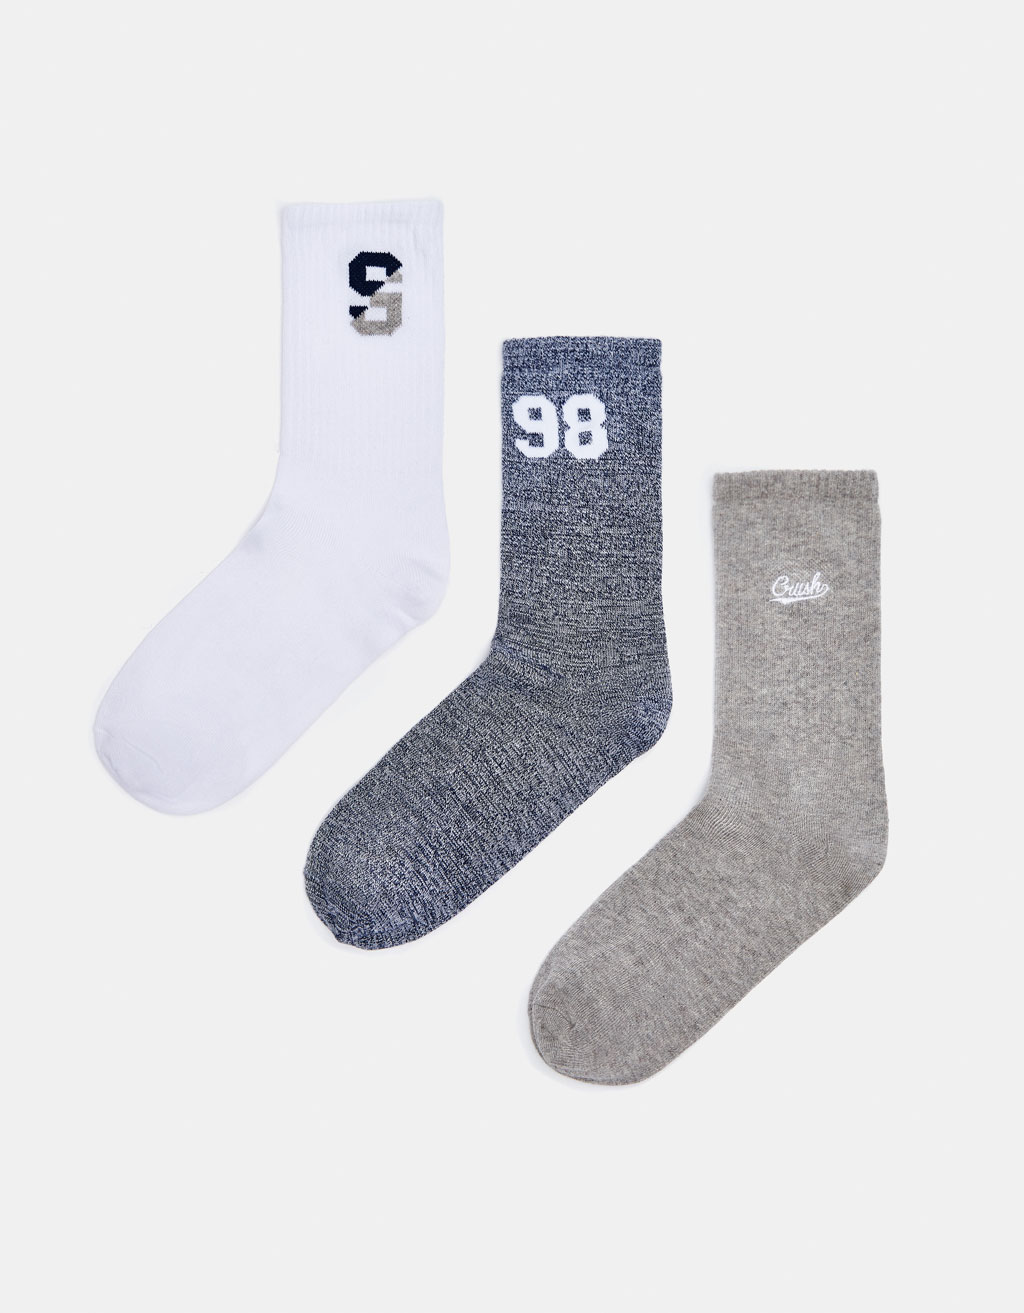 Pack of 3 old school socks